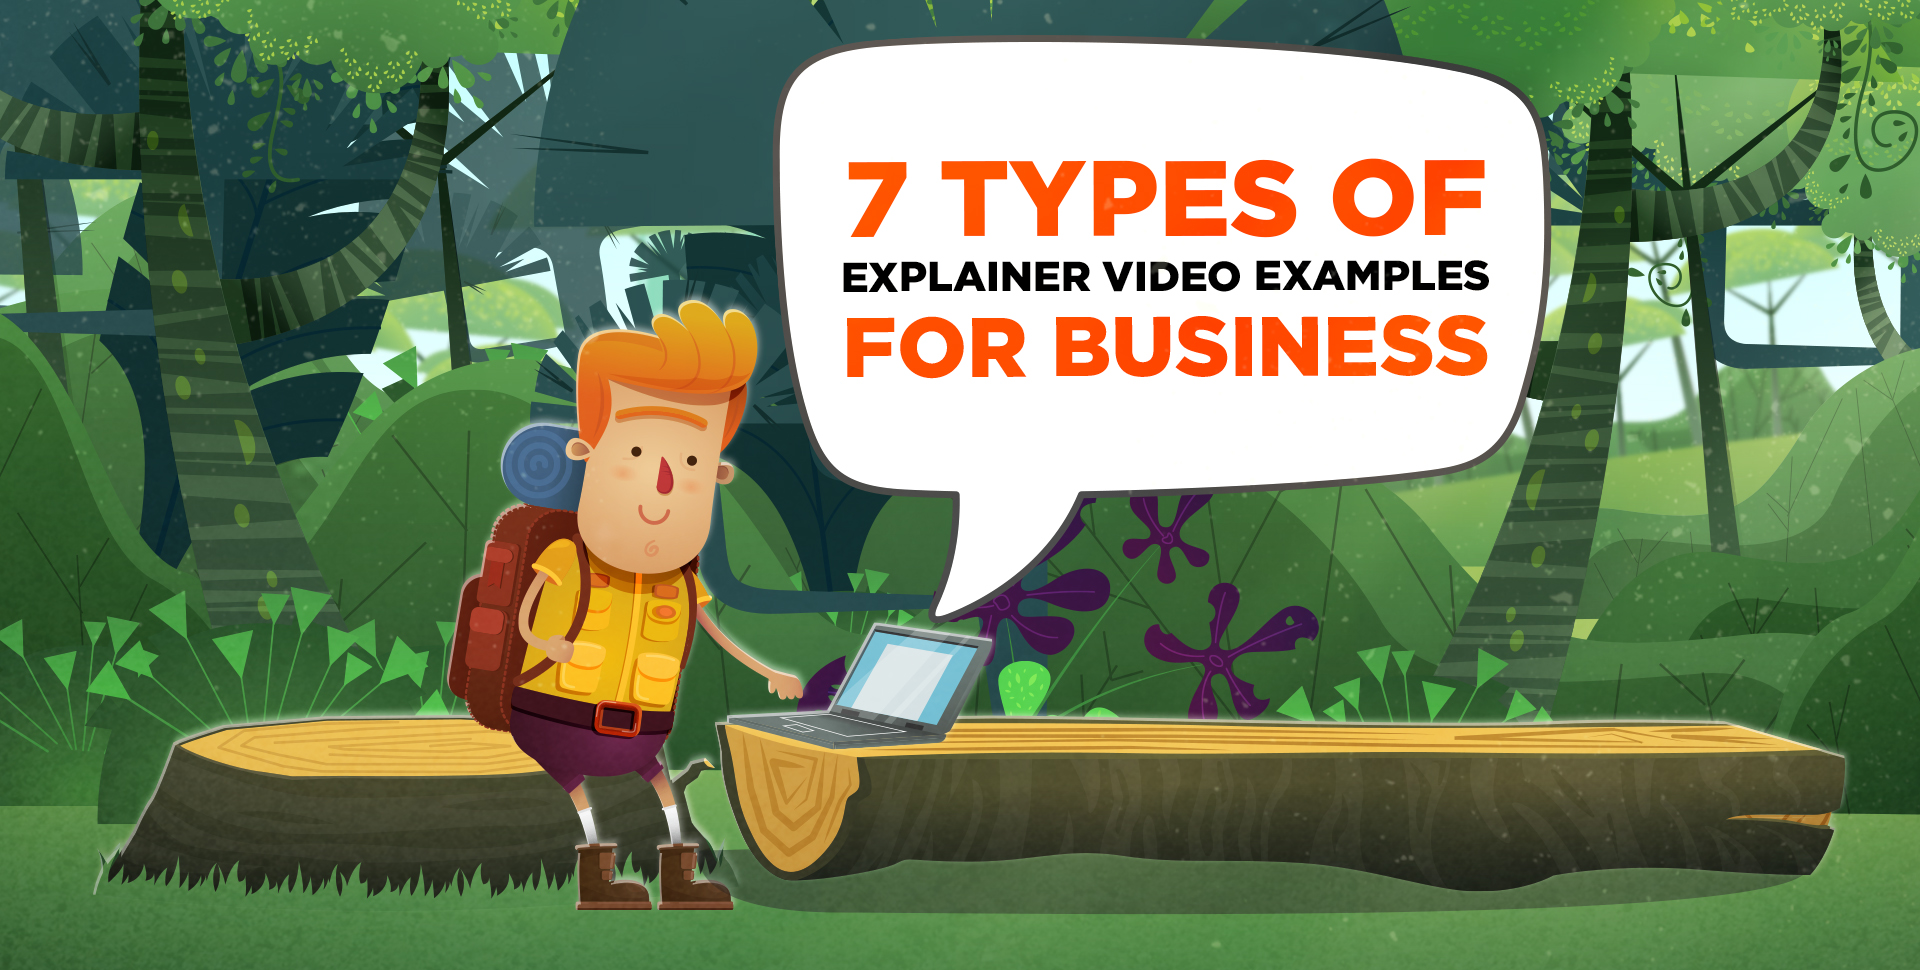 Top 7 Types Of Explainer Video Examples For Businesses